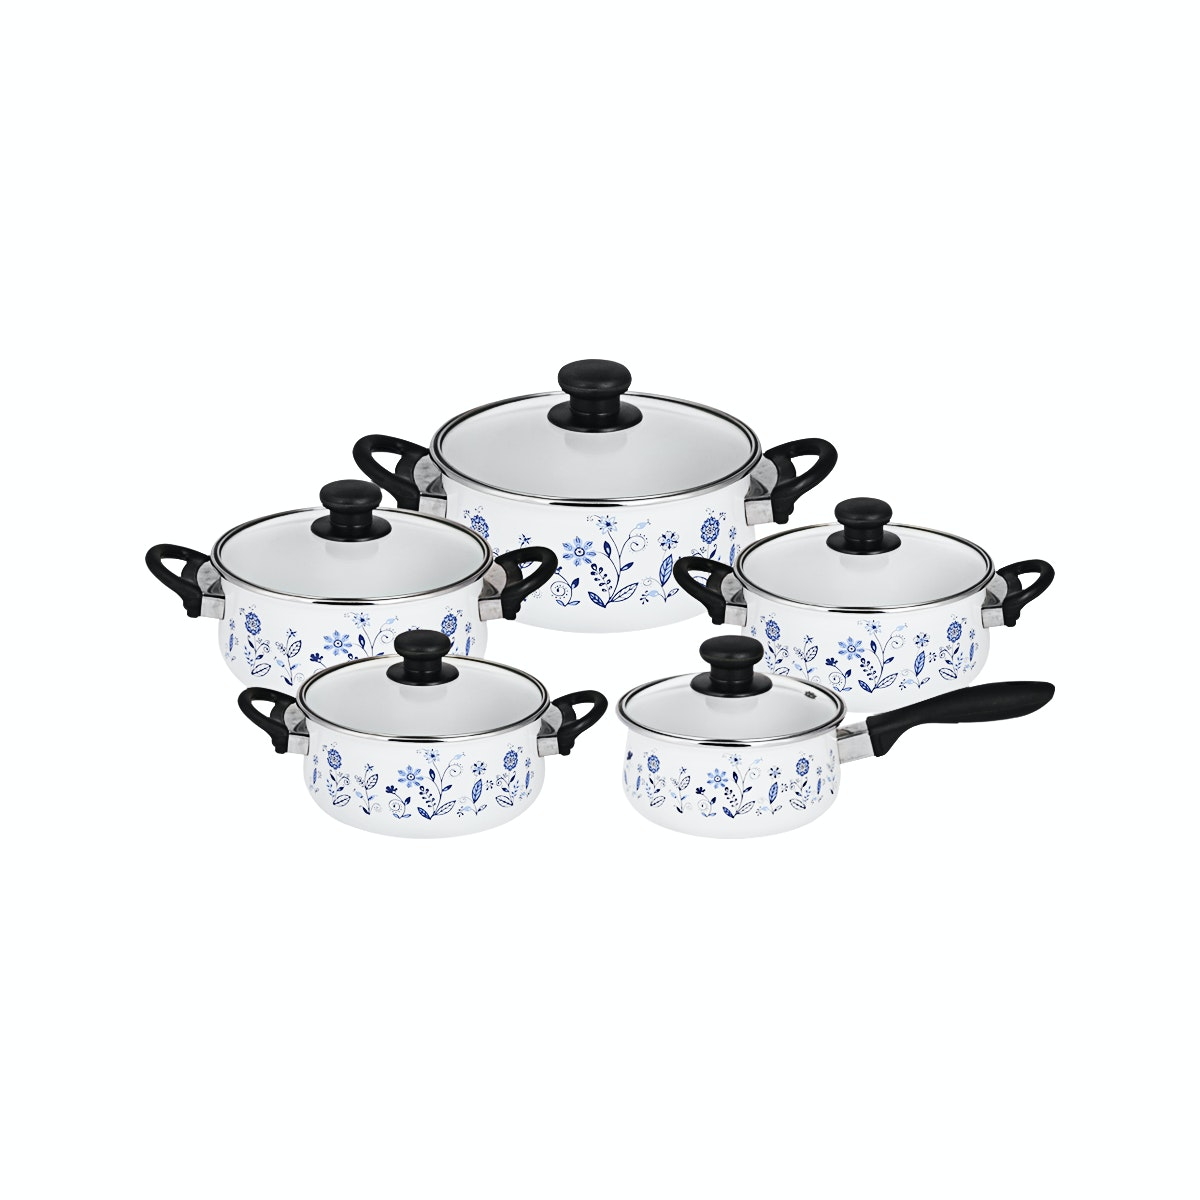 Ideal Panci Masak Tropicana Set 16/24 cm BLUE ROYAL HERITAGE